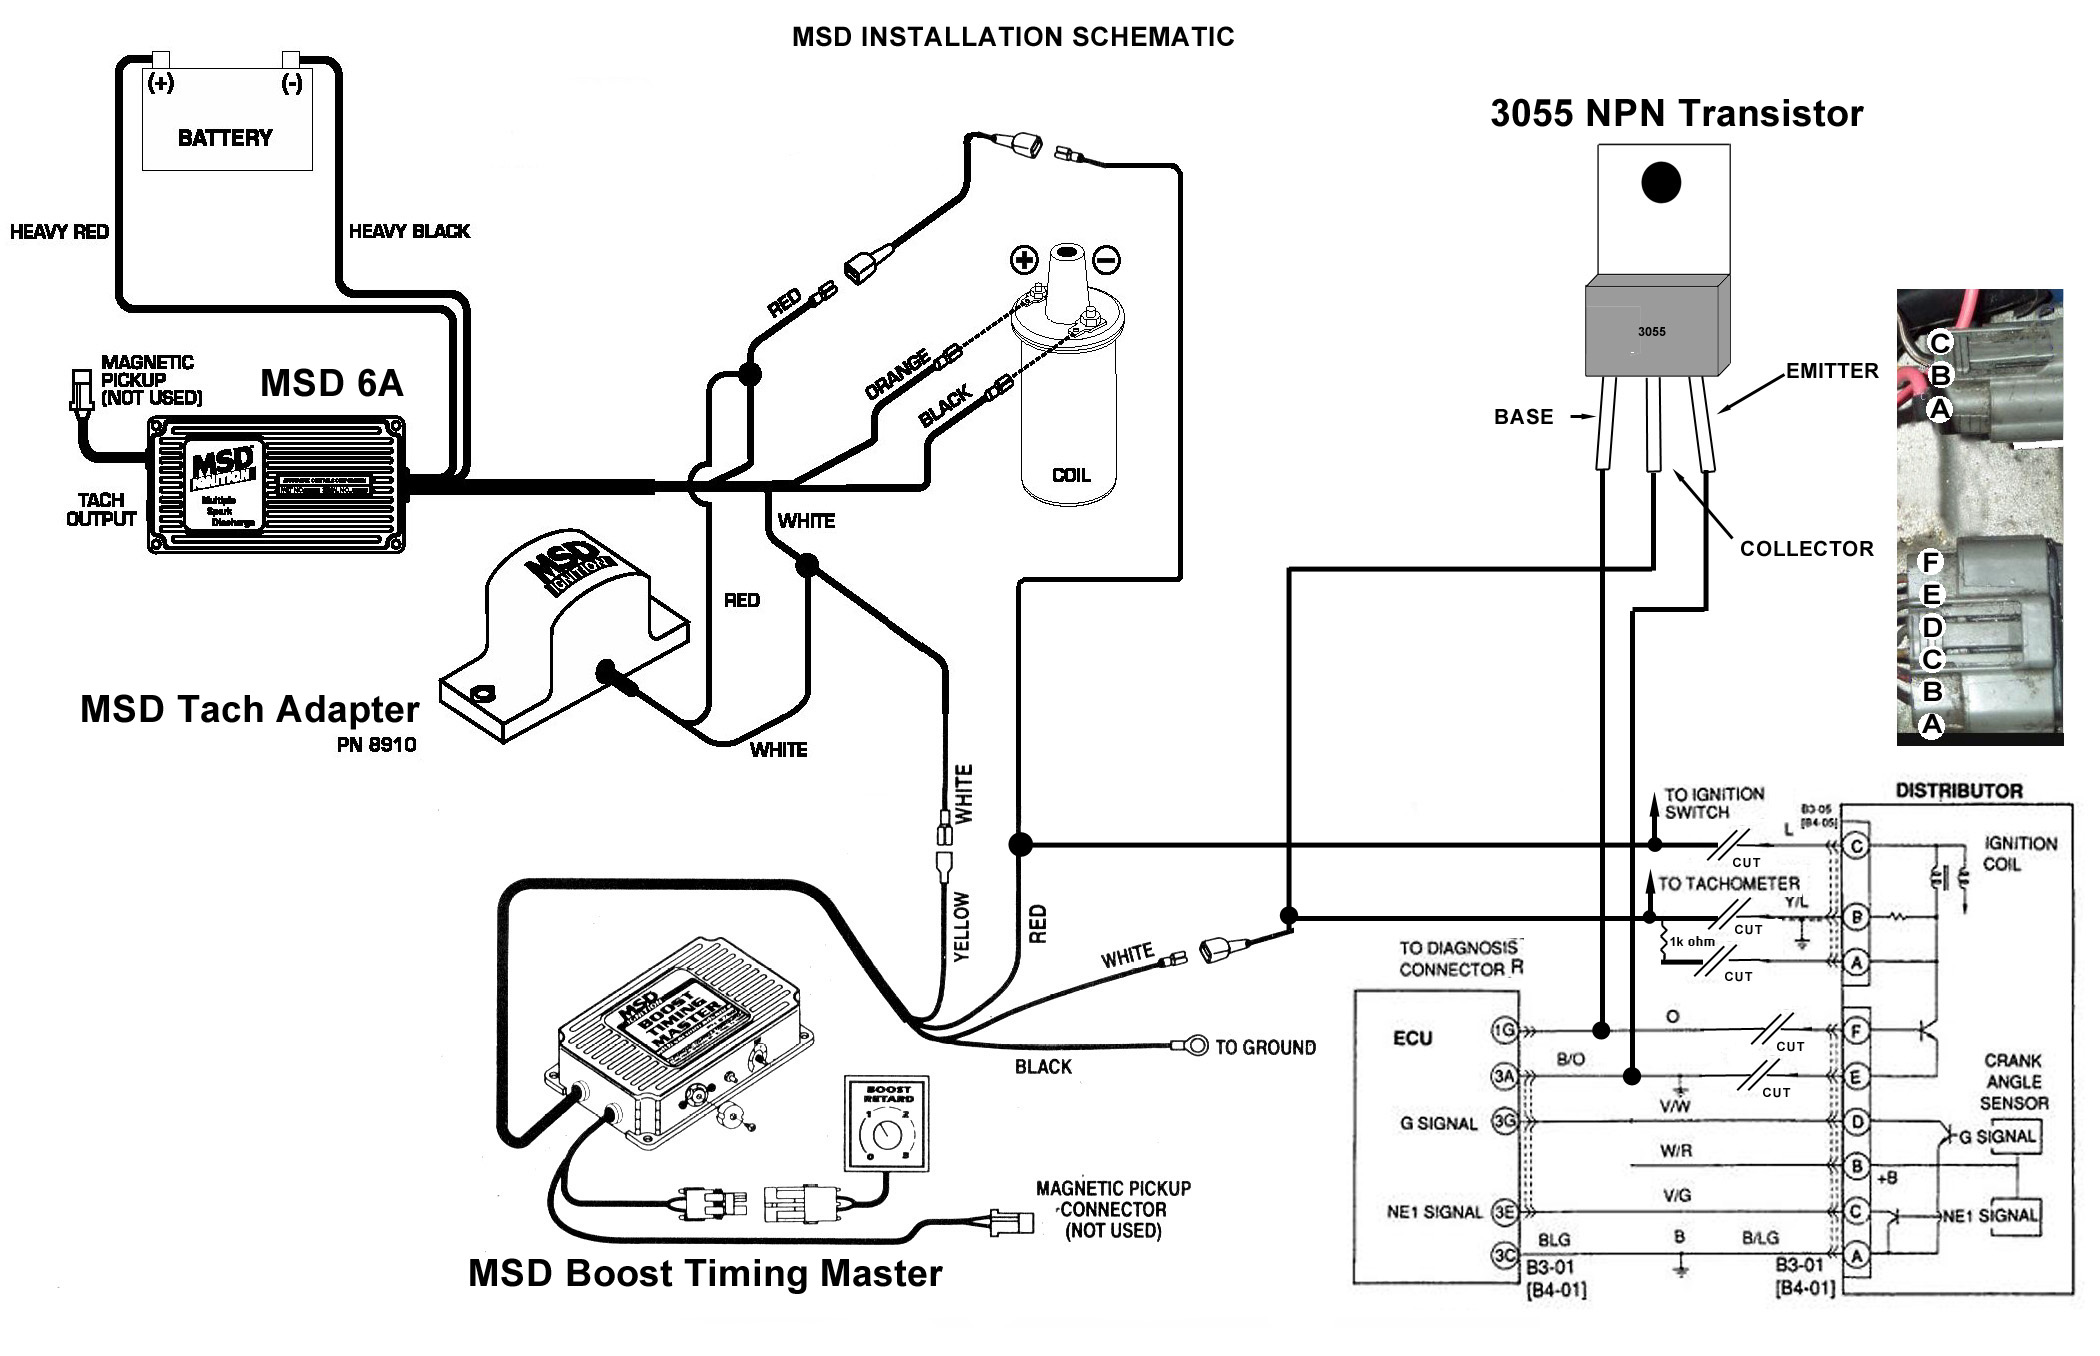 msd_complete msd wiring diagram mazda mx 6 forum msd timing control wiring diagram at cos-gaming.co